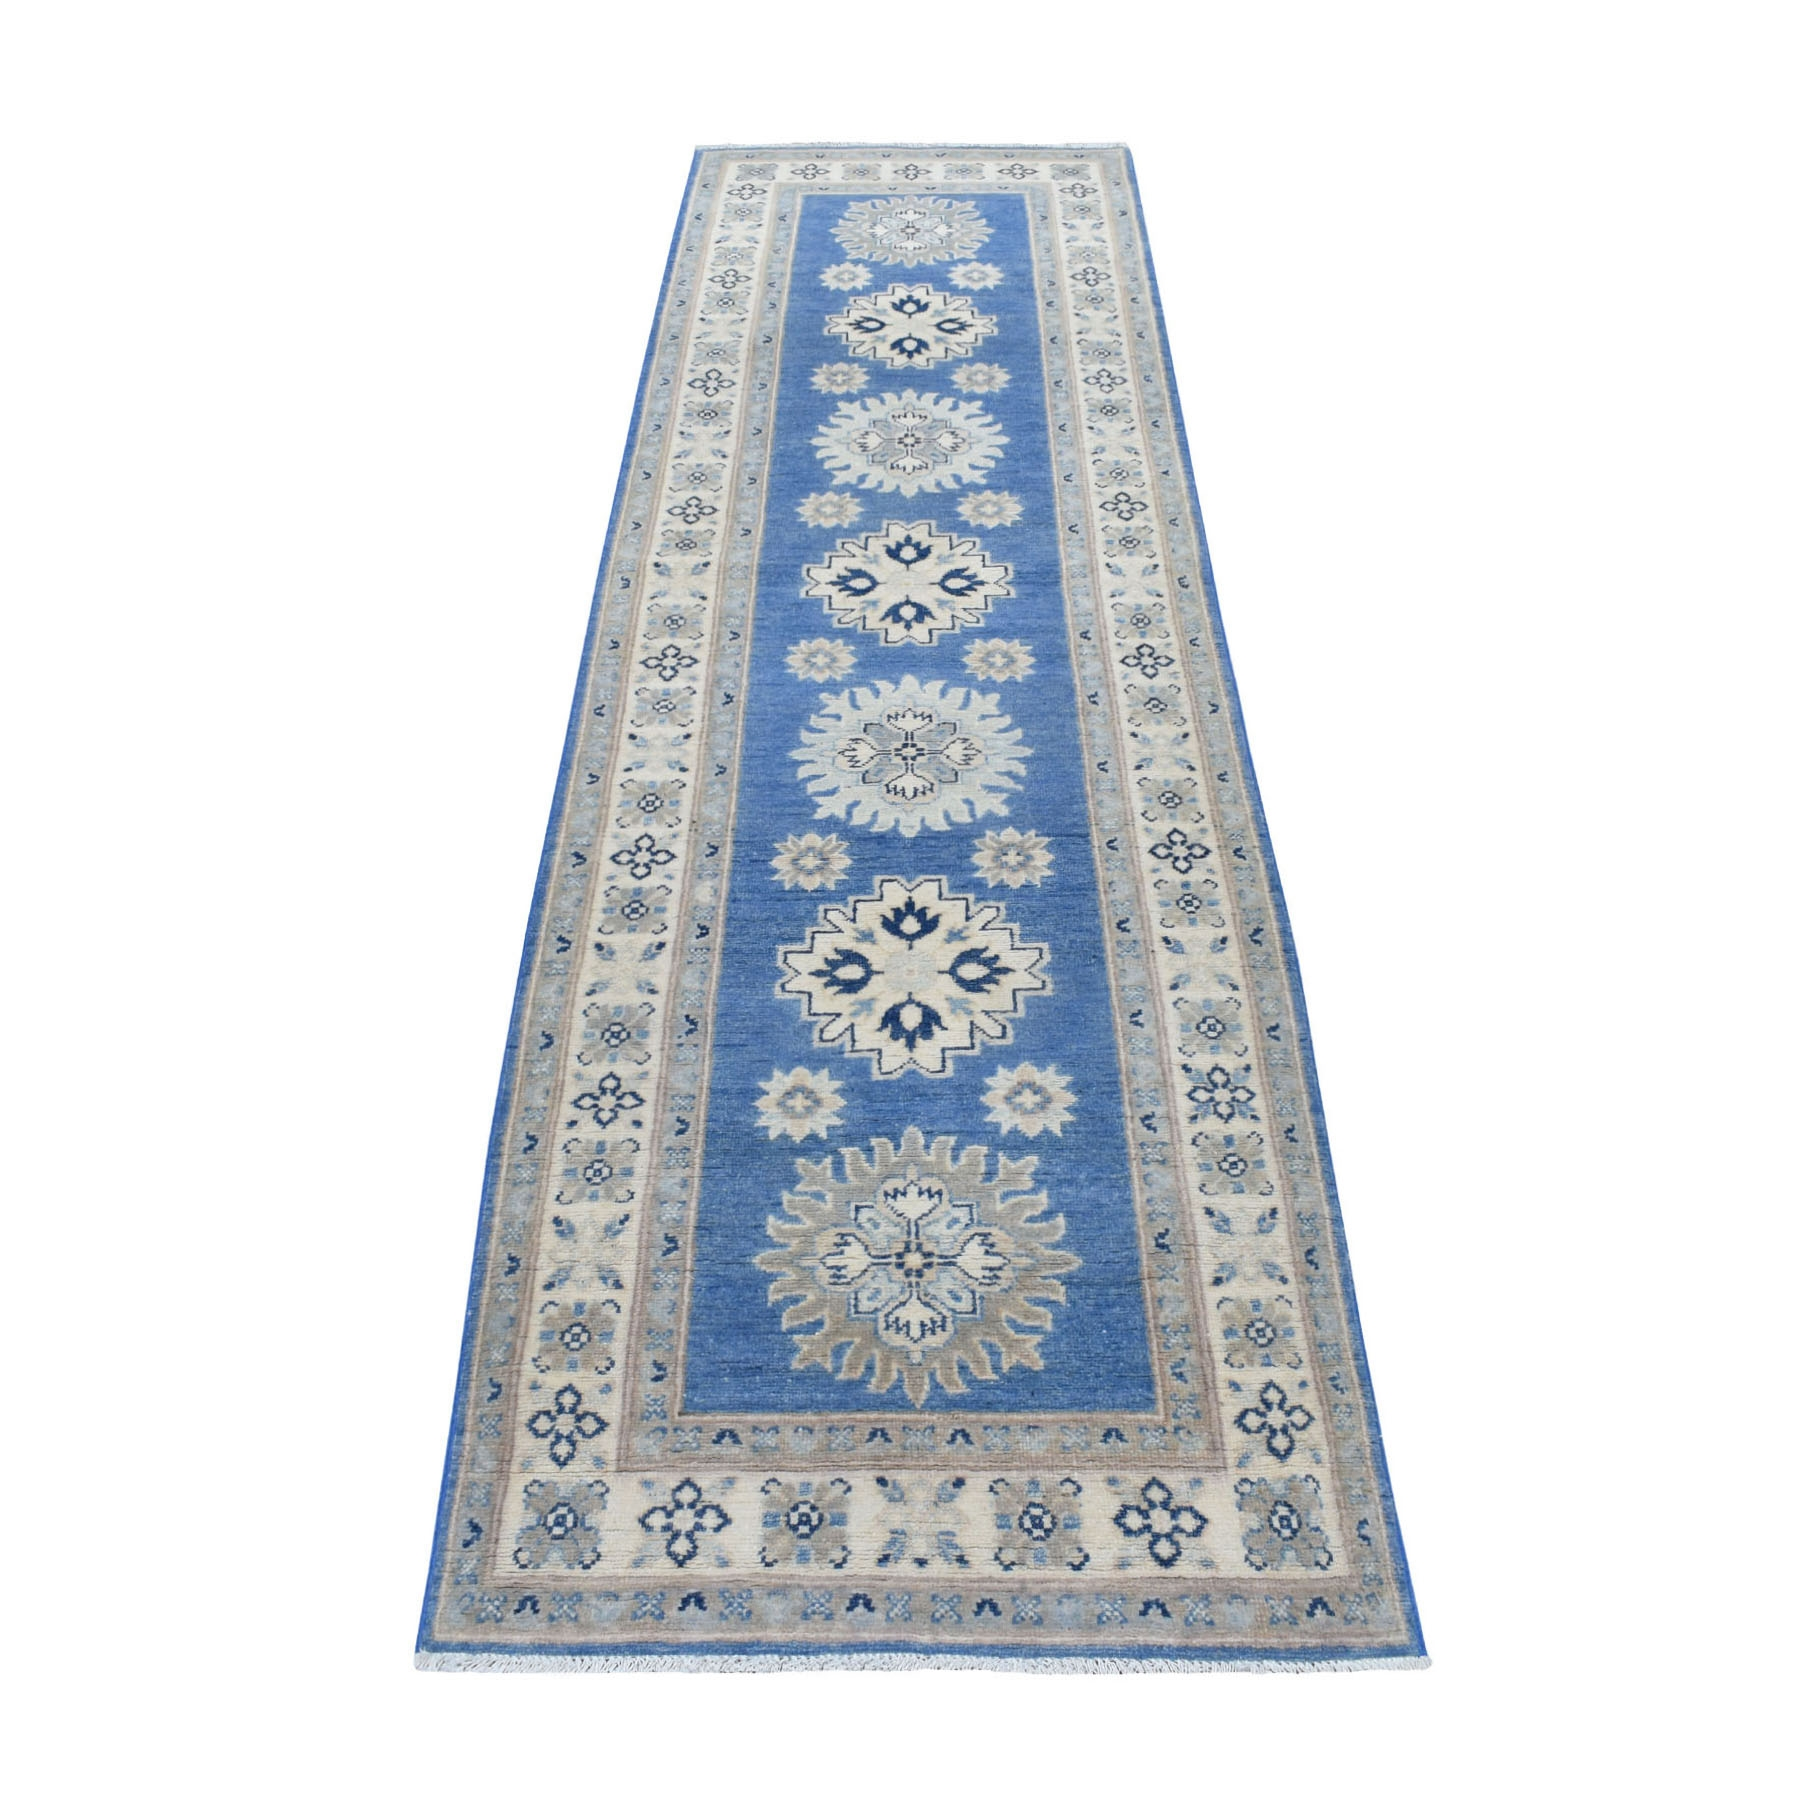 "2'6""x9'7"" Blue Vintage Look Kazak Organic Wool Tribal Design Hand Knotted Runner Oriental Rug"